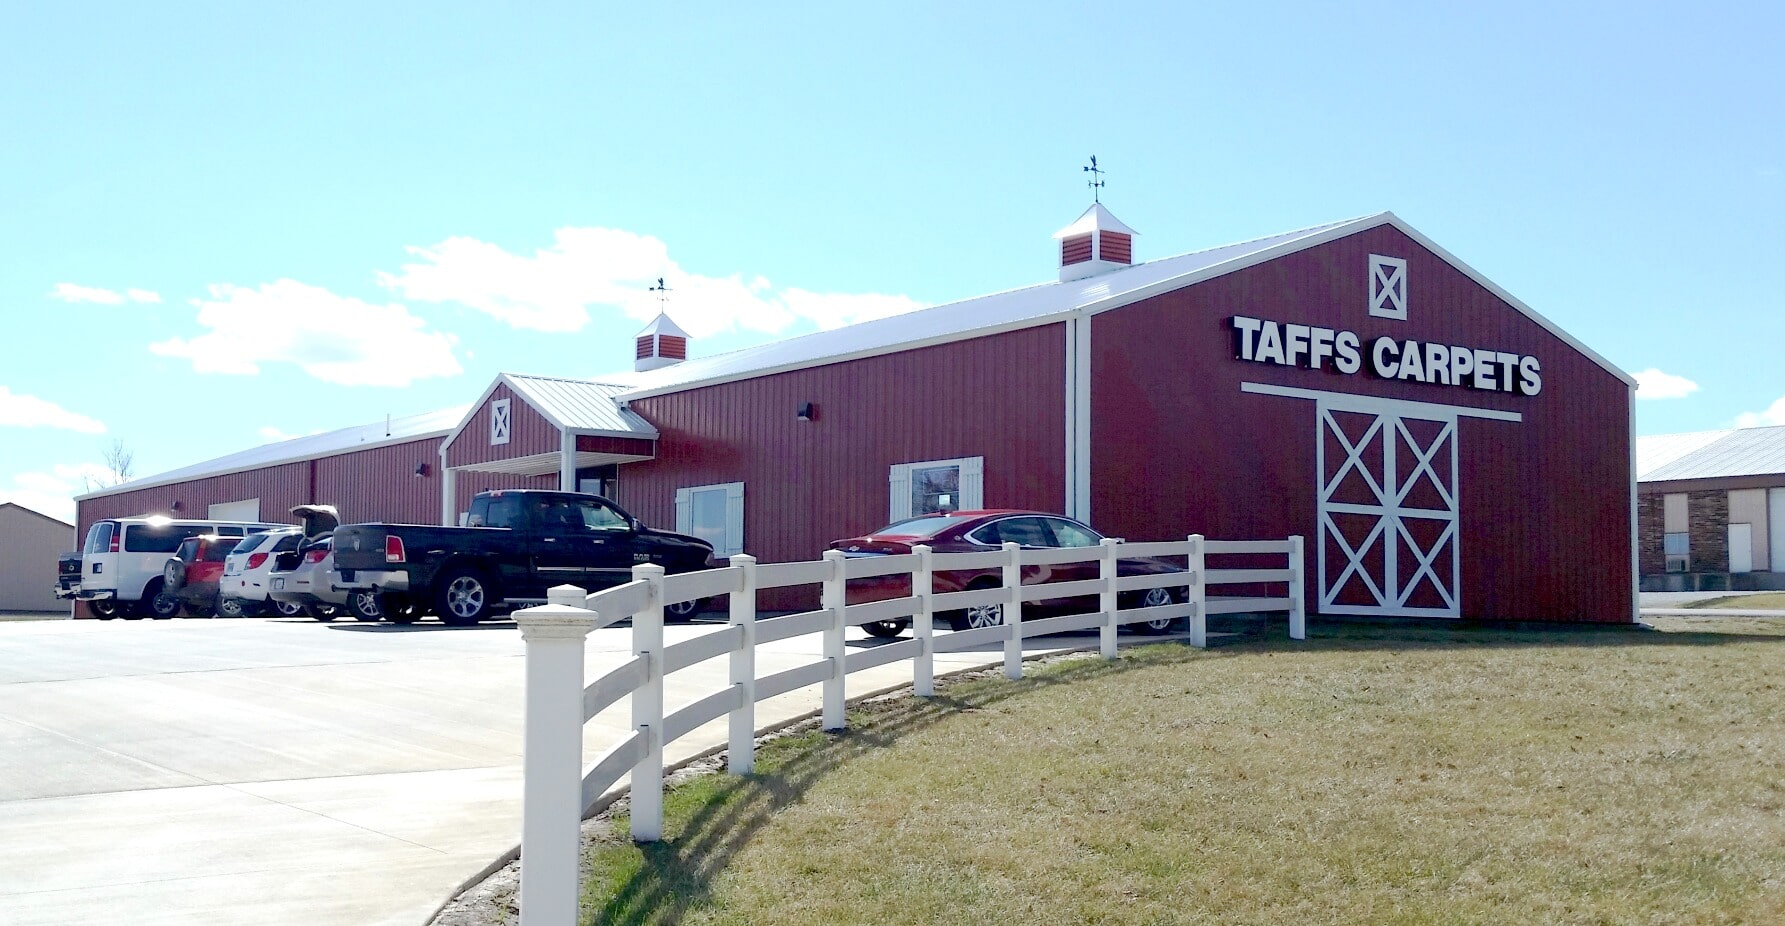 Taff's Carpets showroom in Kearney, MO